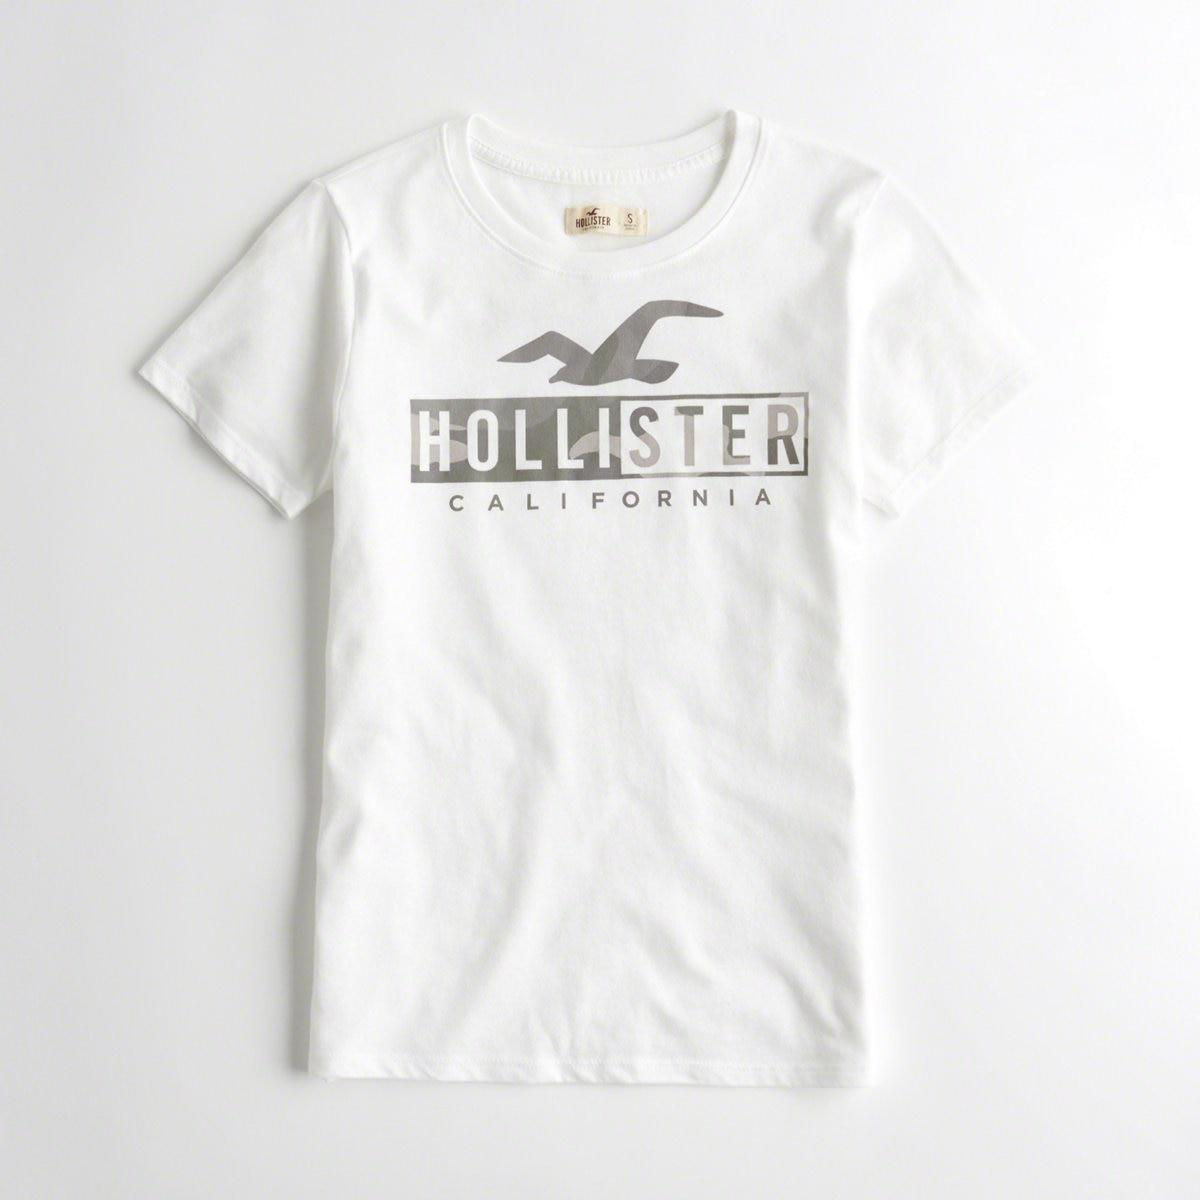 7064a7d2 Lyst - Hollister Girls Print Logo Graphic Tee From Hollister in ...